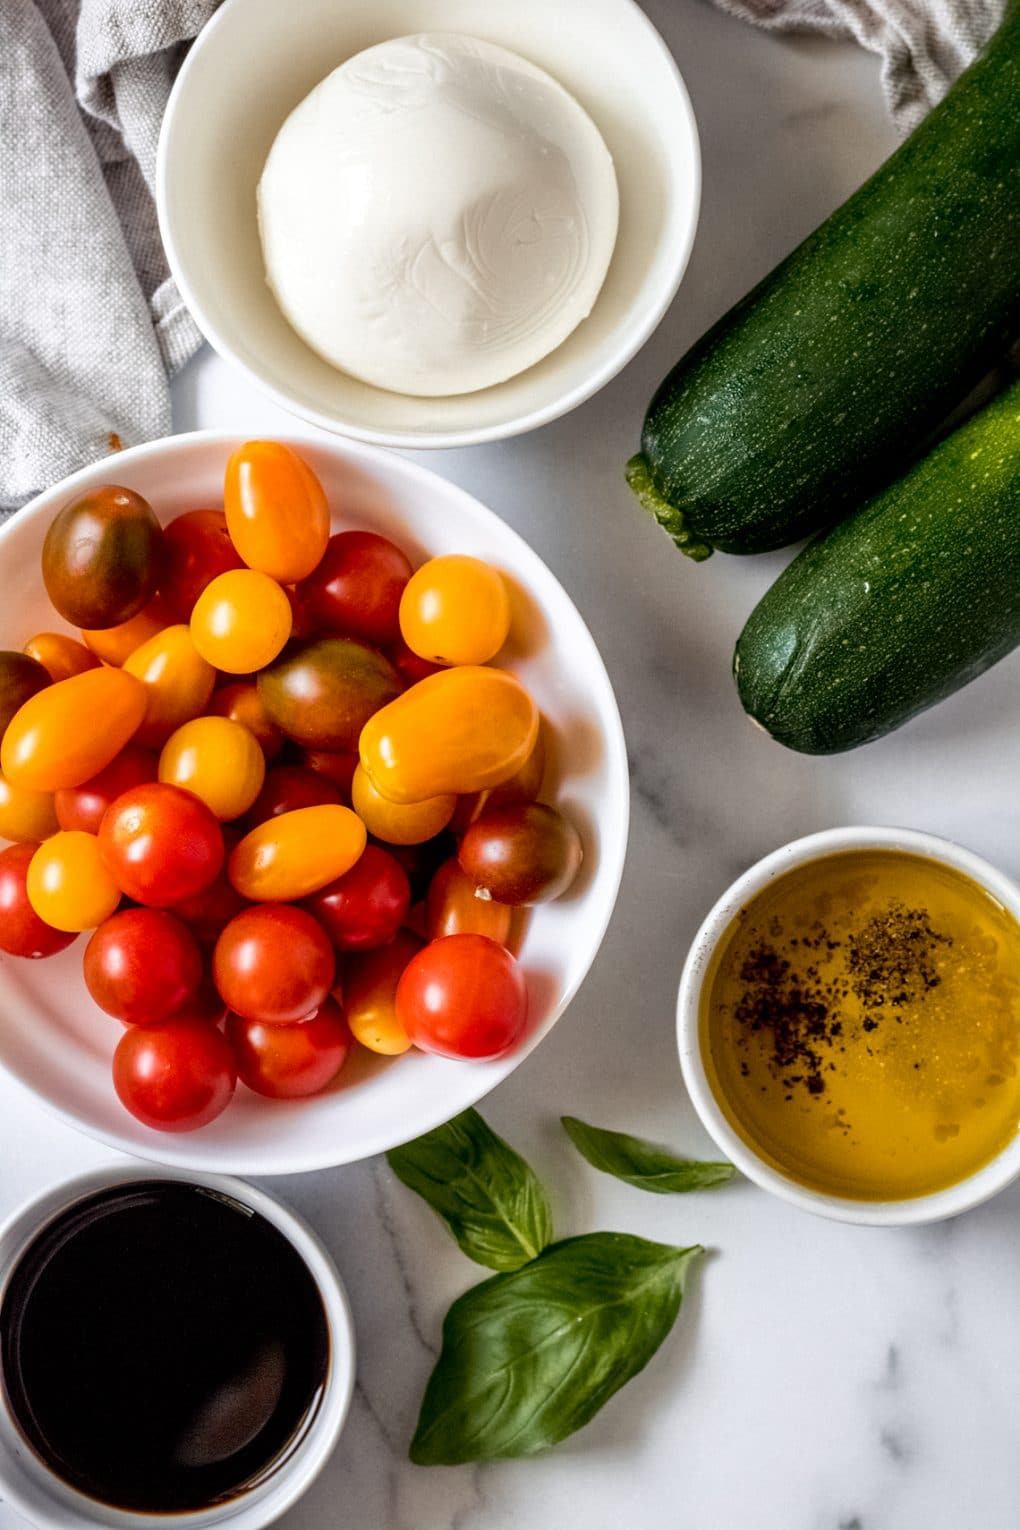 ingredients for gluten-free marinated tomato salad